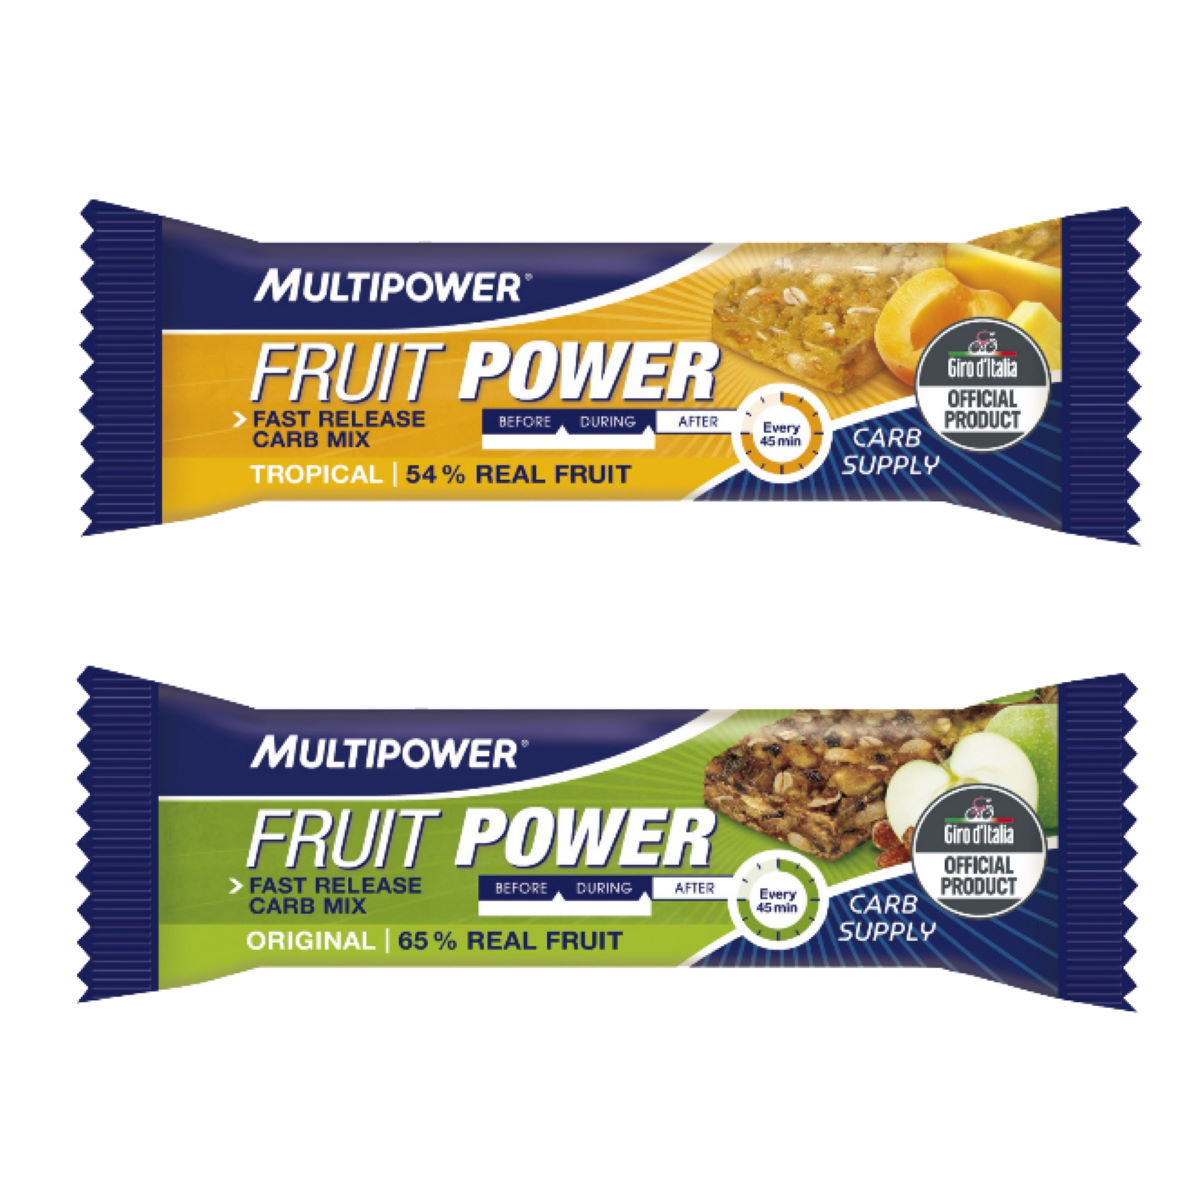 Multipower Fruit Power 24 x 40g